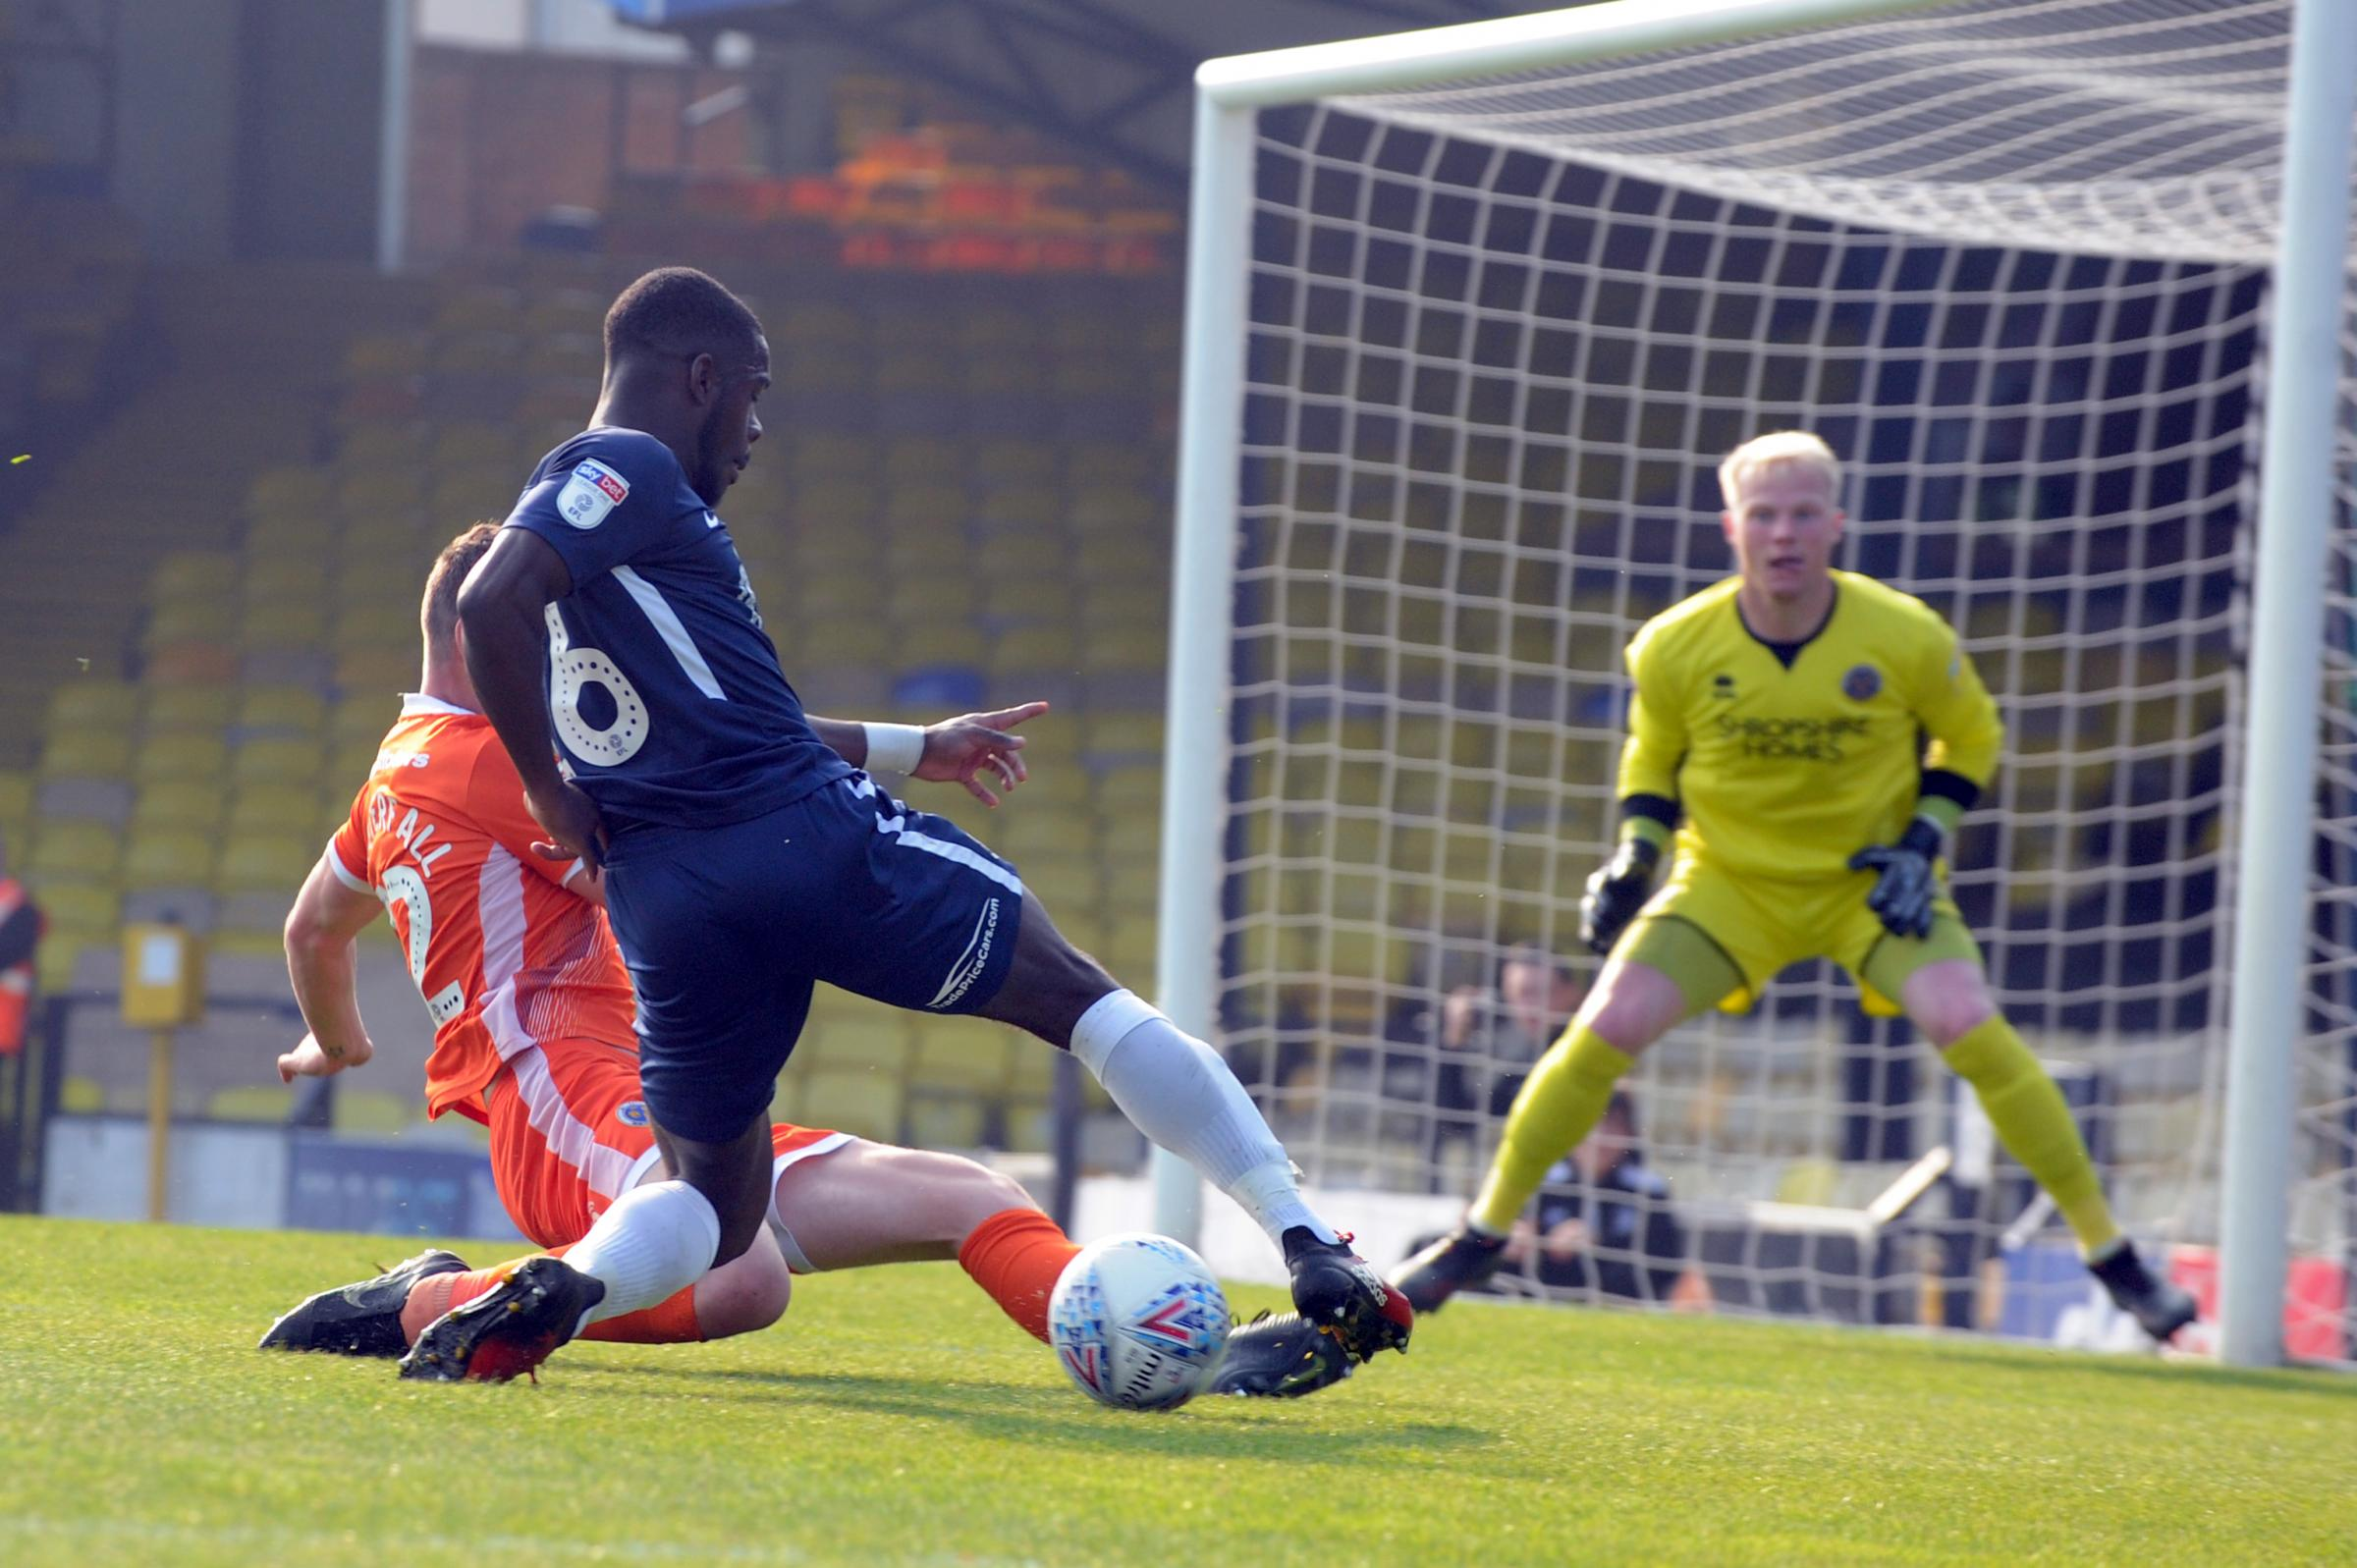 Bursting forward - Southend United midfielder Dru Yearwood